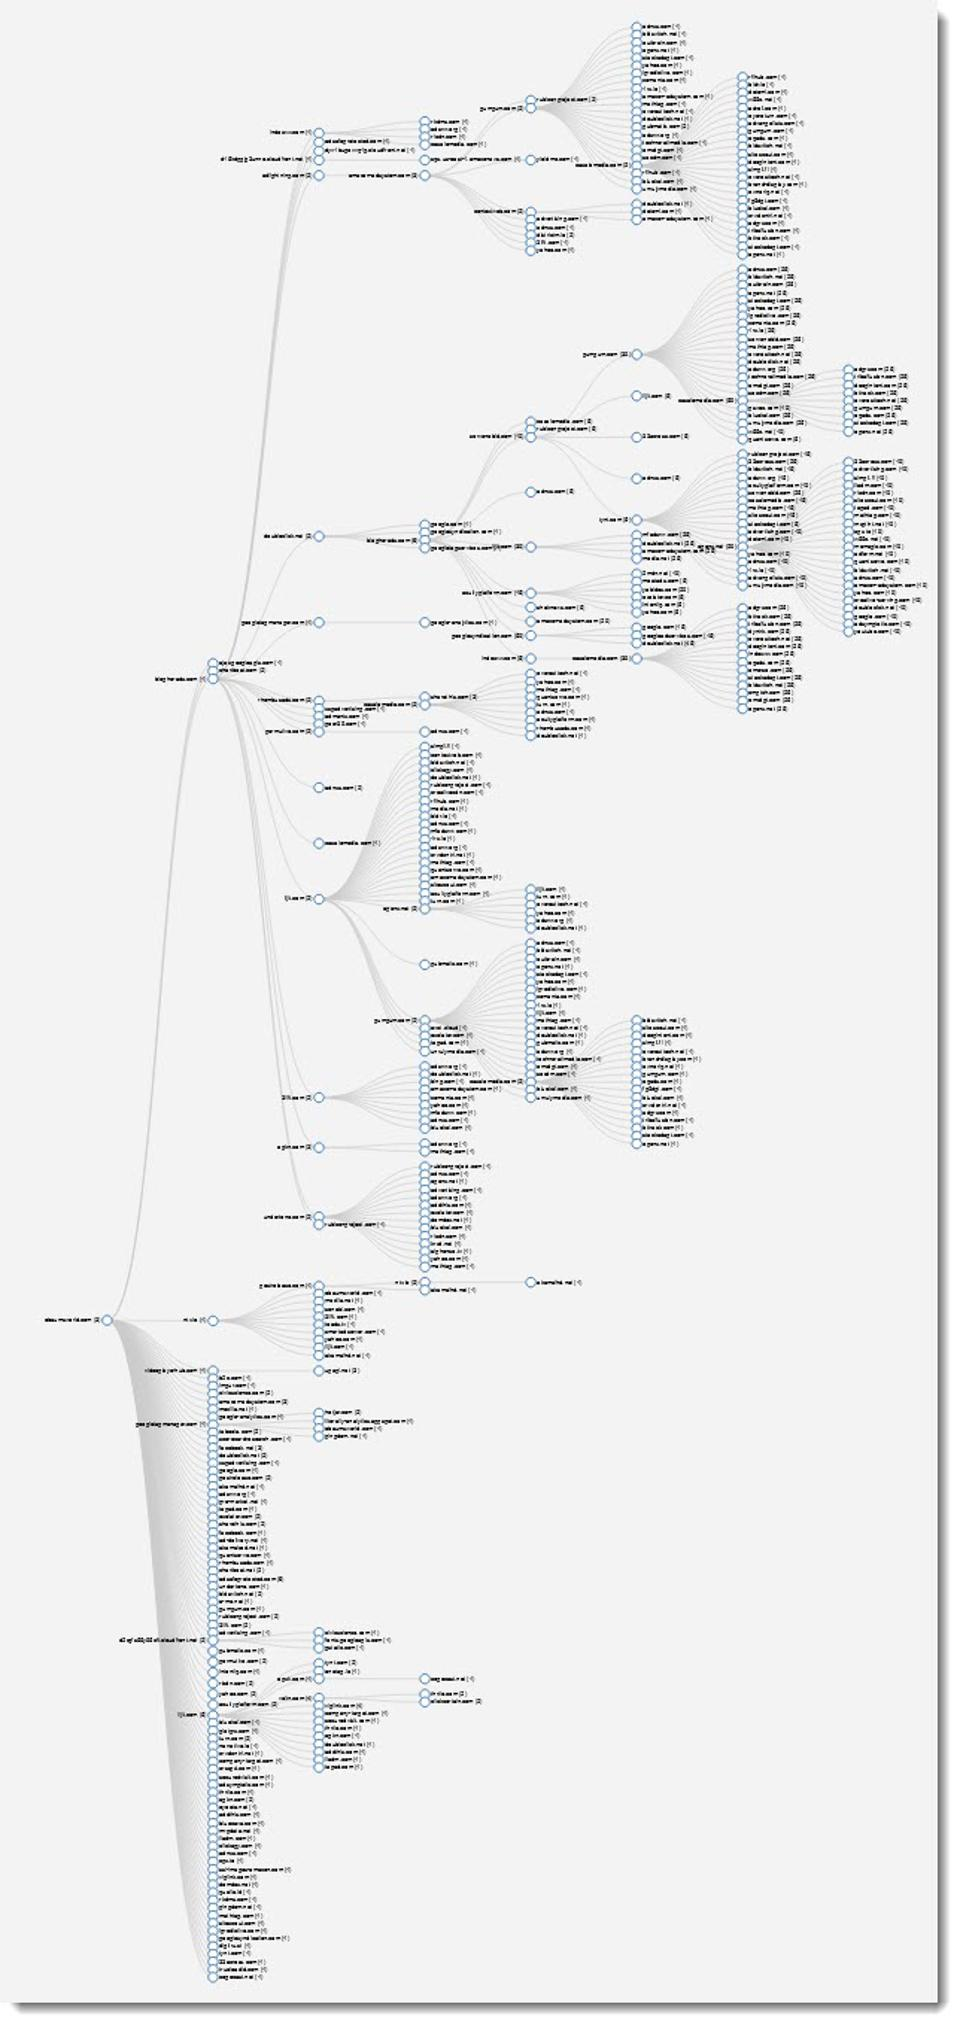 #FouAnalytics tree graph of ebaums ads and trackers from 1 page